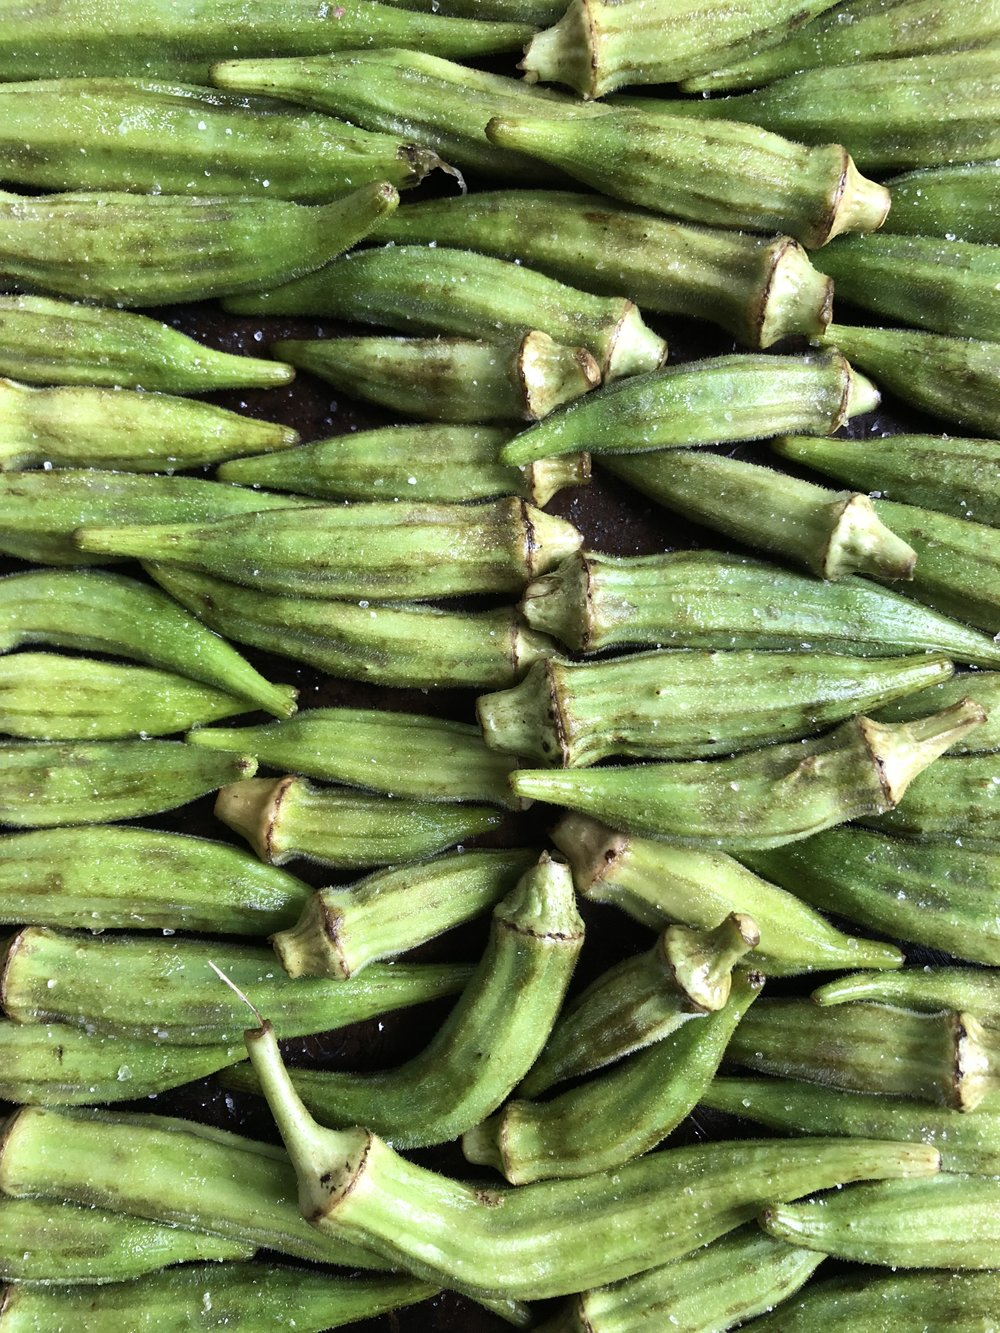 Okra ready for the oven